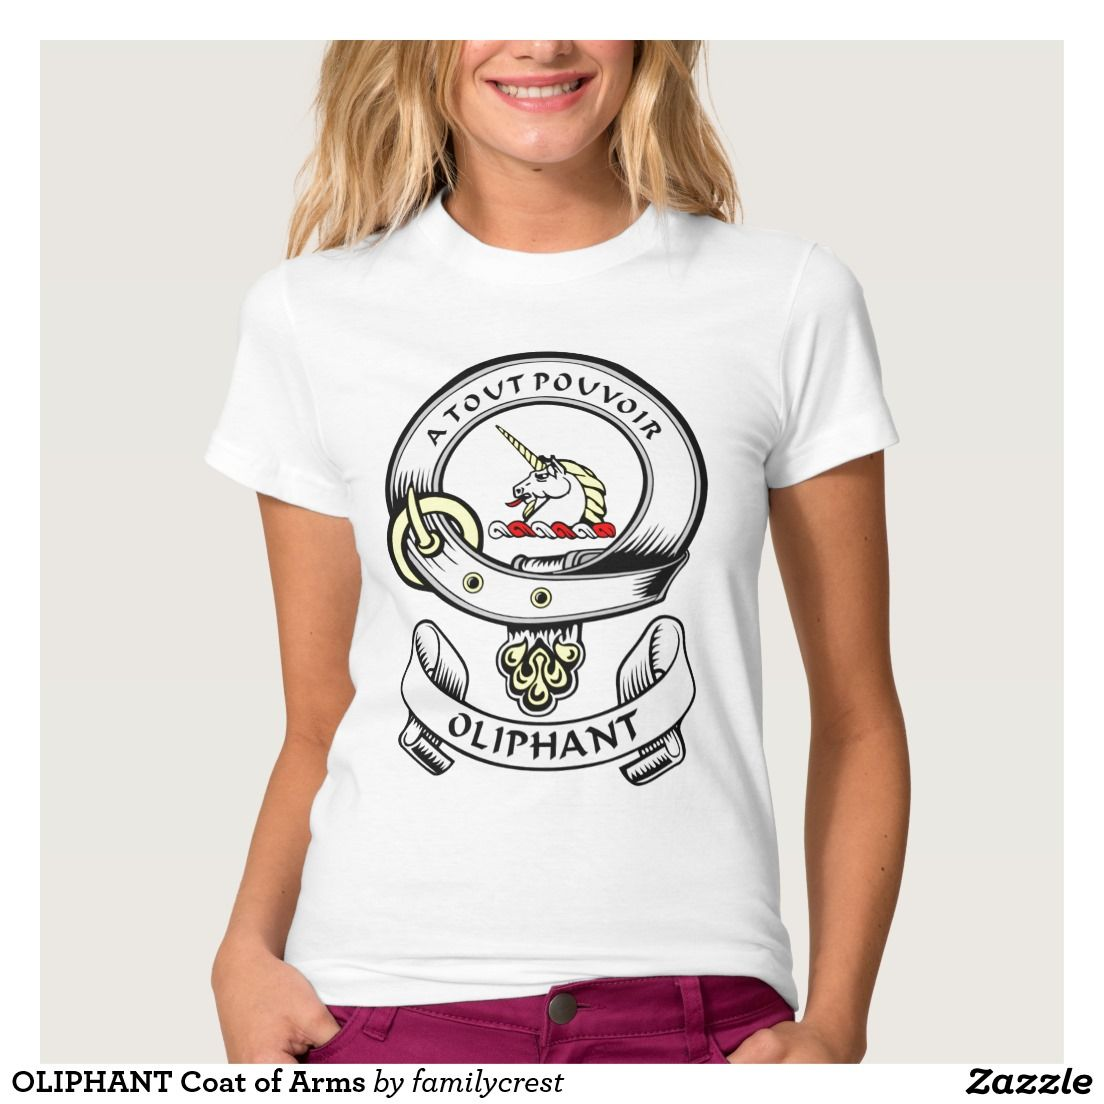 OLIPHANT Coat of Arms Tee Shirt